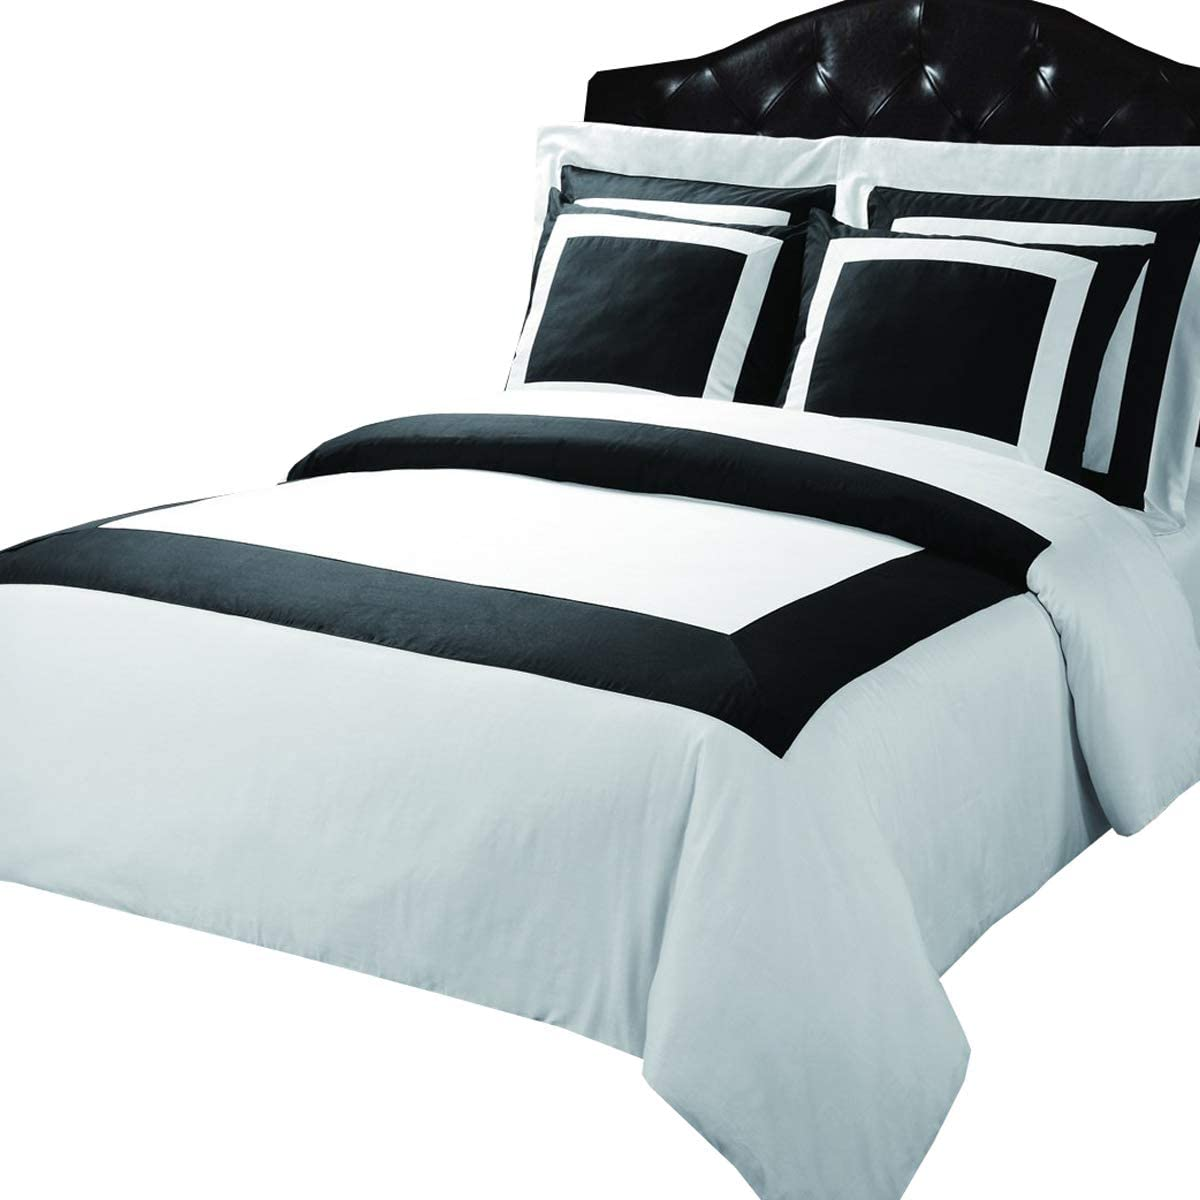 Luxury 3-PC Black with White 300 Thread Count Twin/Twin XL Duvet Cover Set 100 % Cotton comforter cover set with matching pillow shams By sheetsnthings …